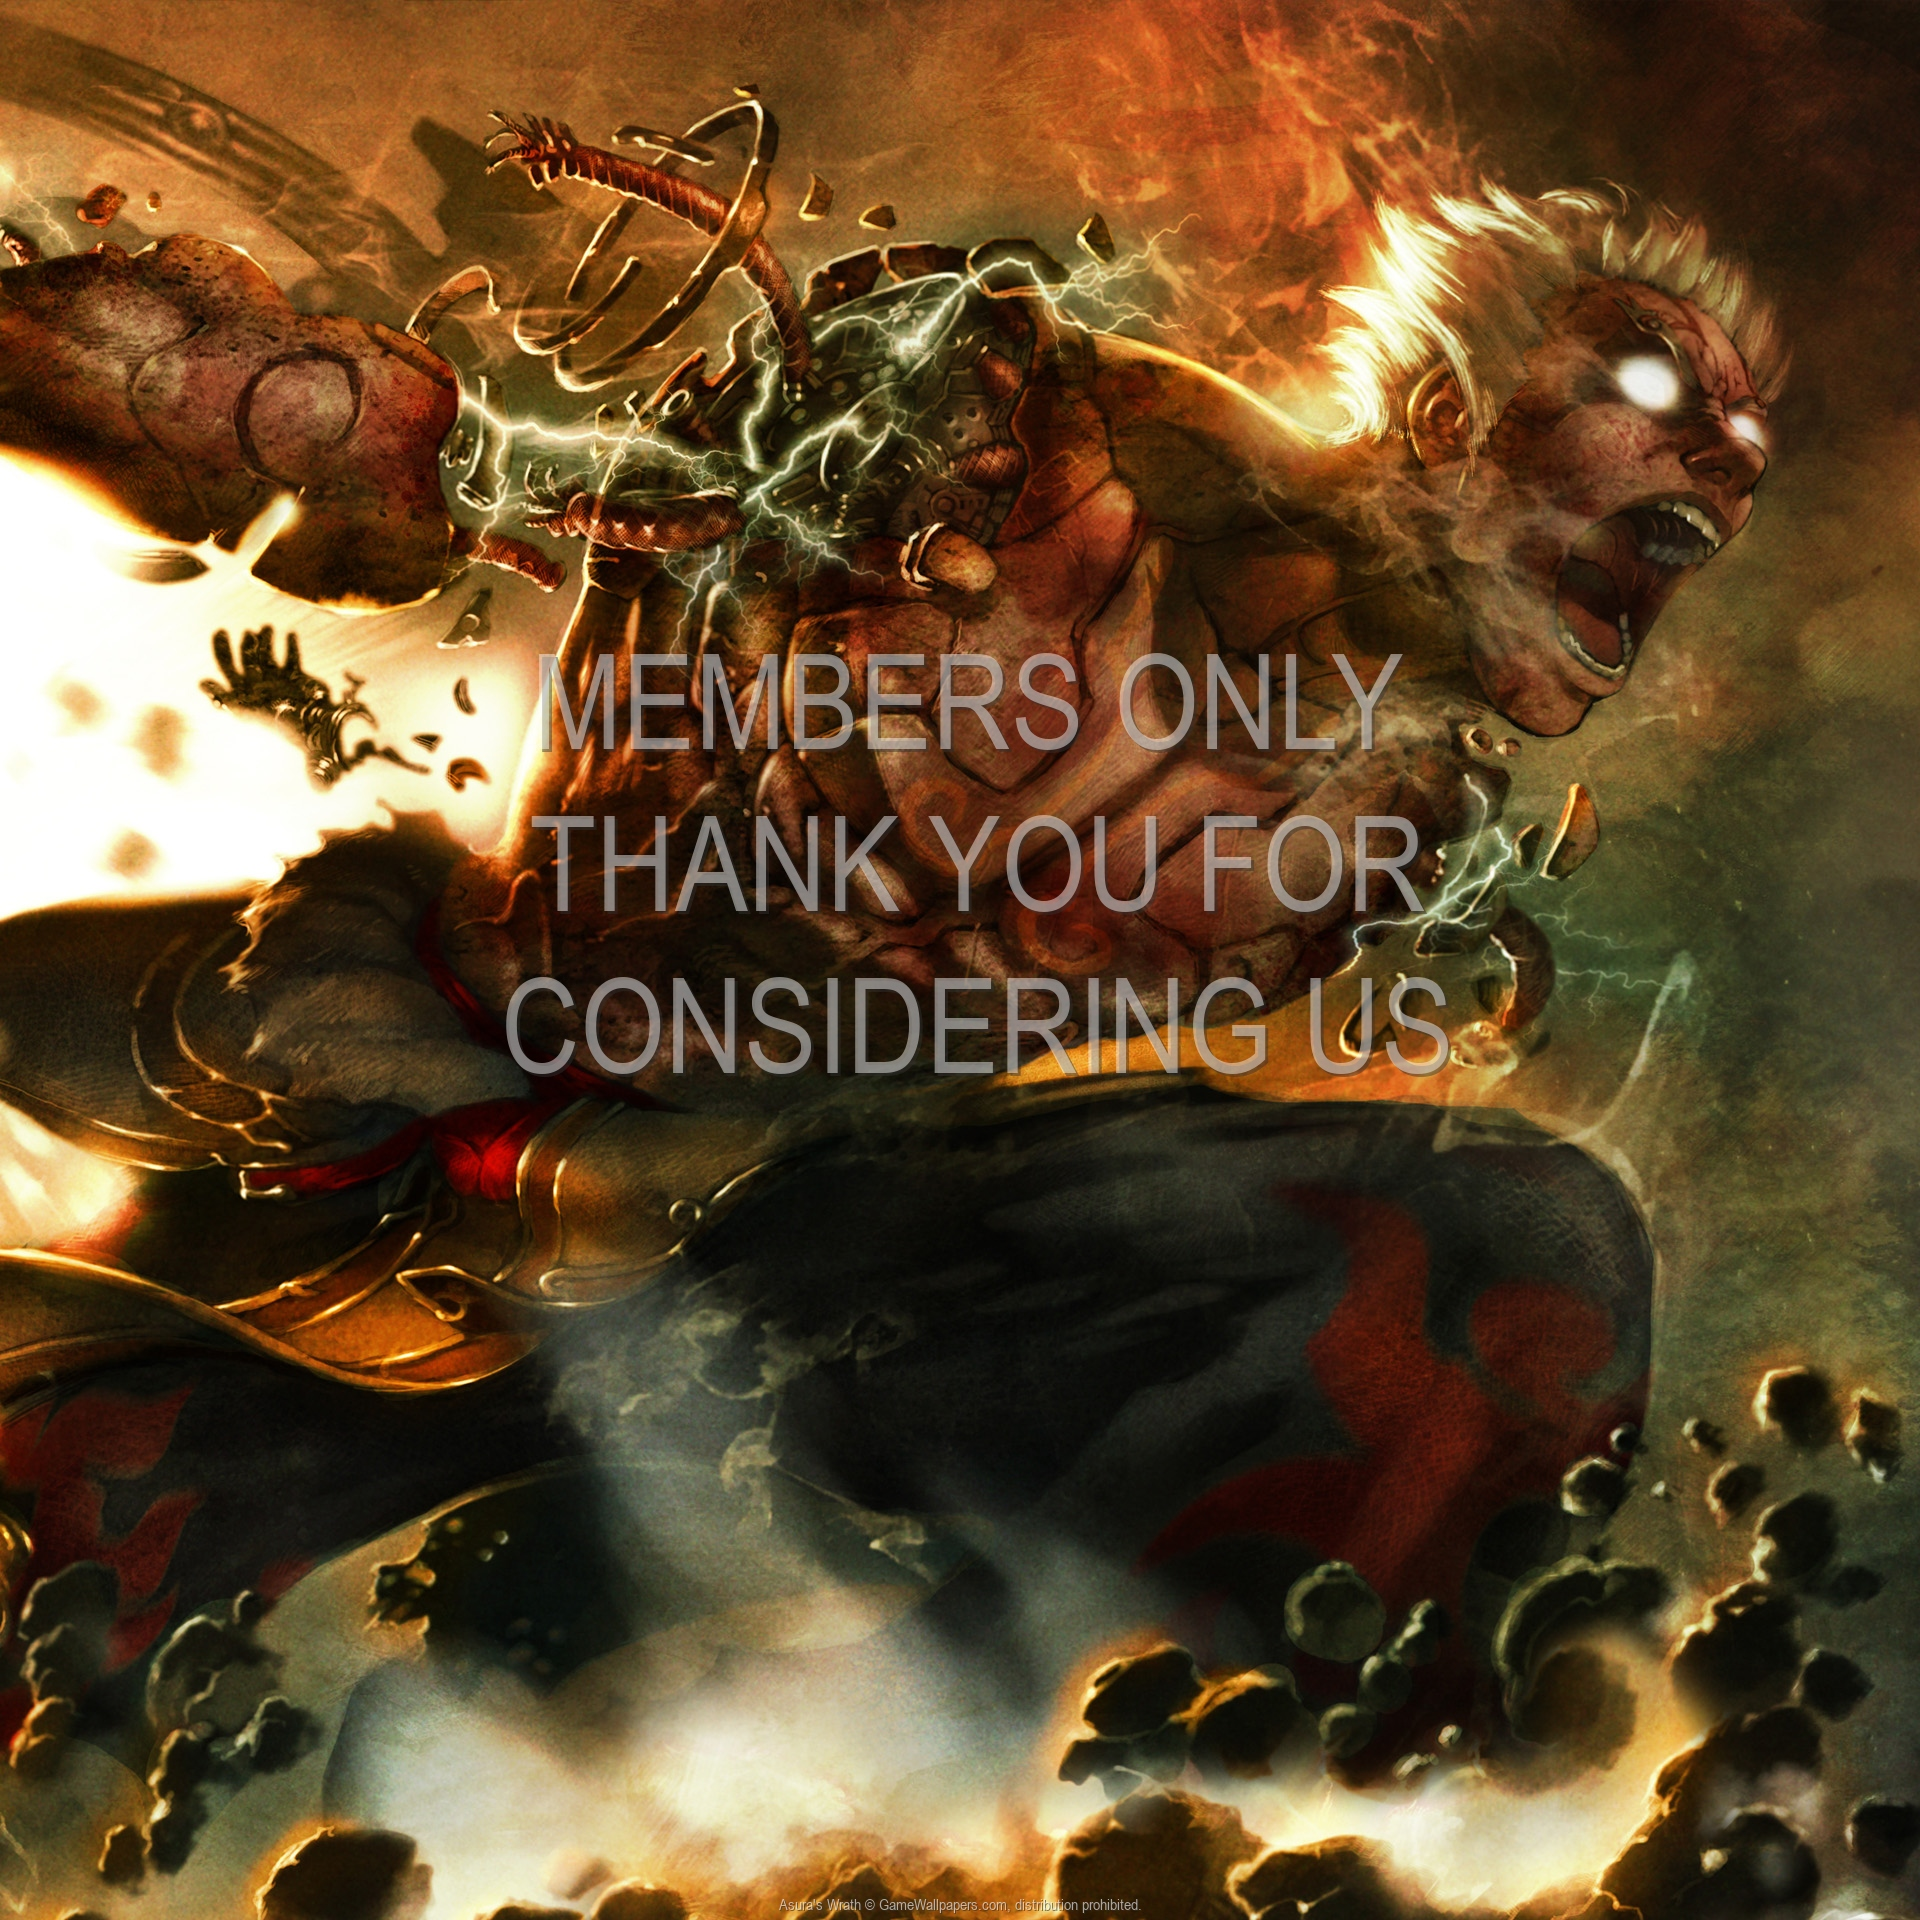 Asura's Wrath 1920x1080 Mobile wallpaper or background 03